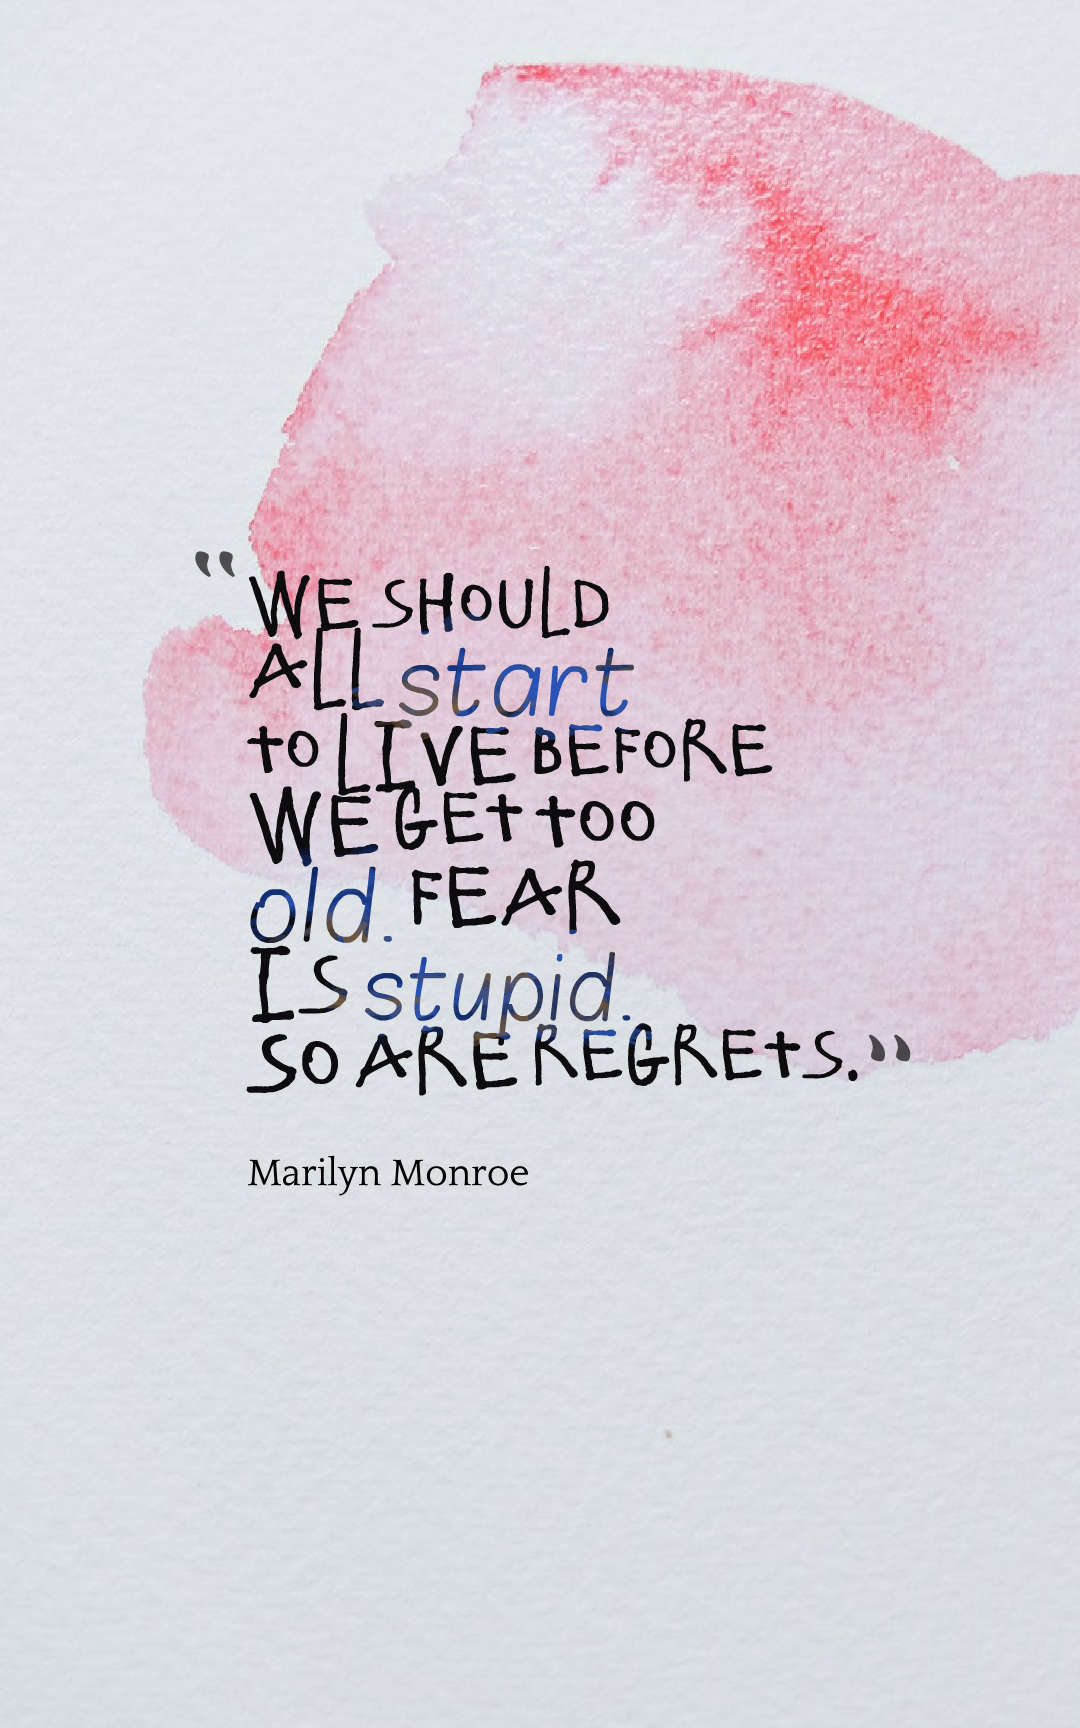 Quotes image of We should all start to live before we get too old. Fear is stupid. So are regrets.